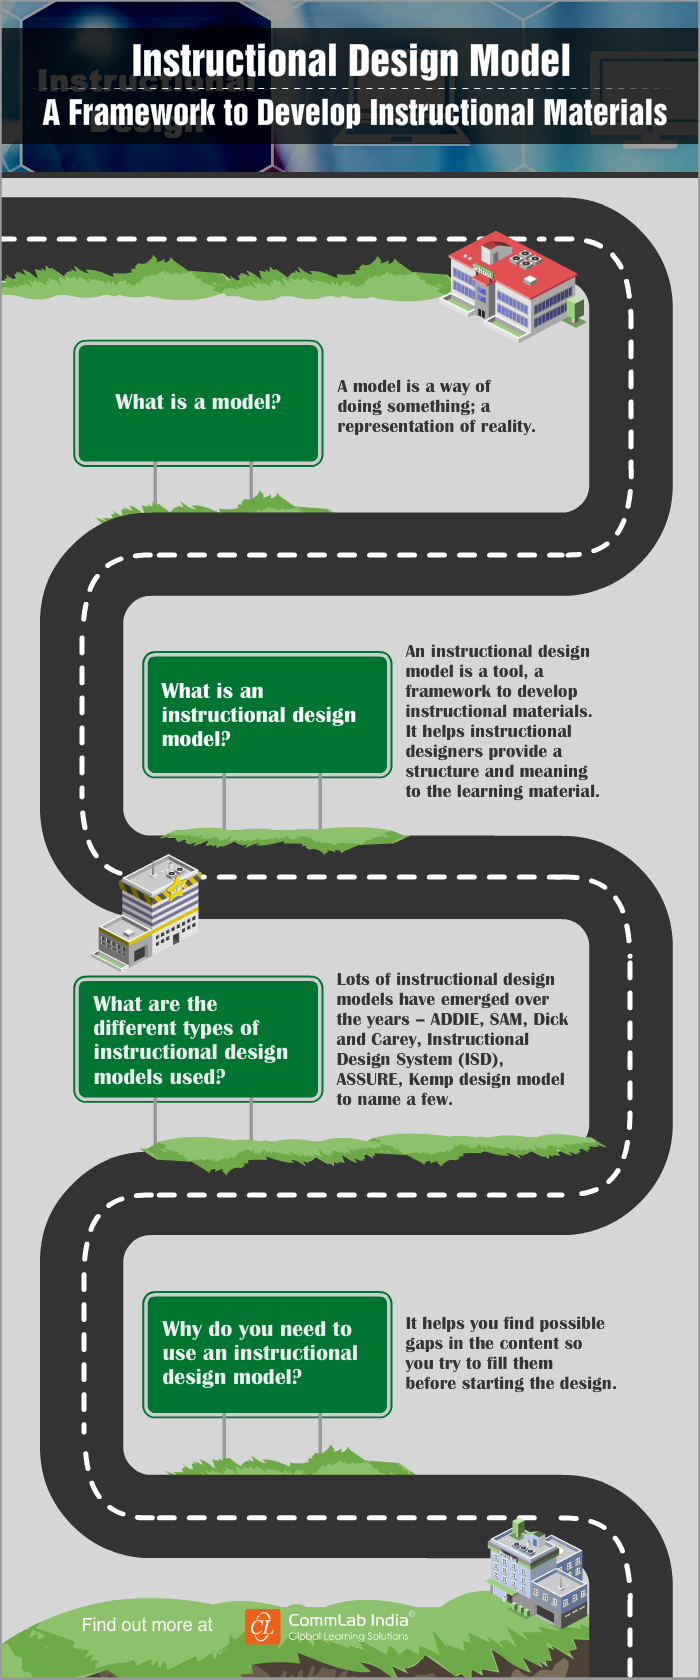 Instructional Design Model - A Framework to Develop Instructional Materials [Infographic]